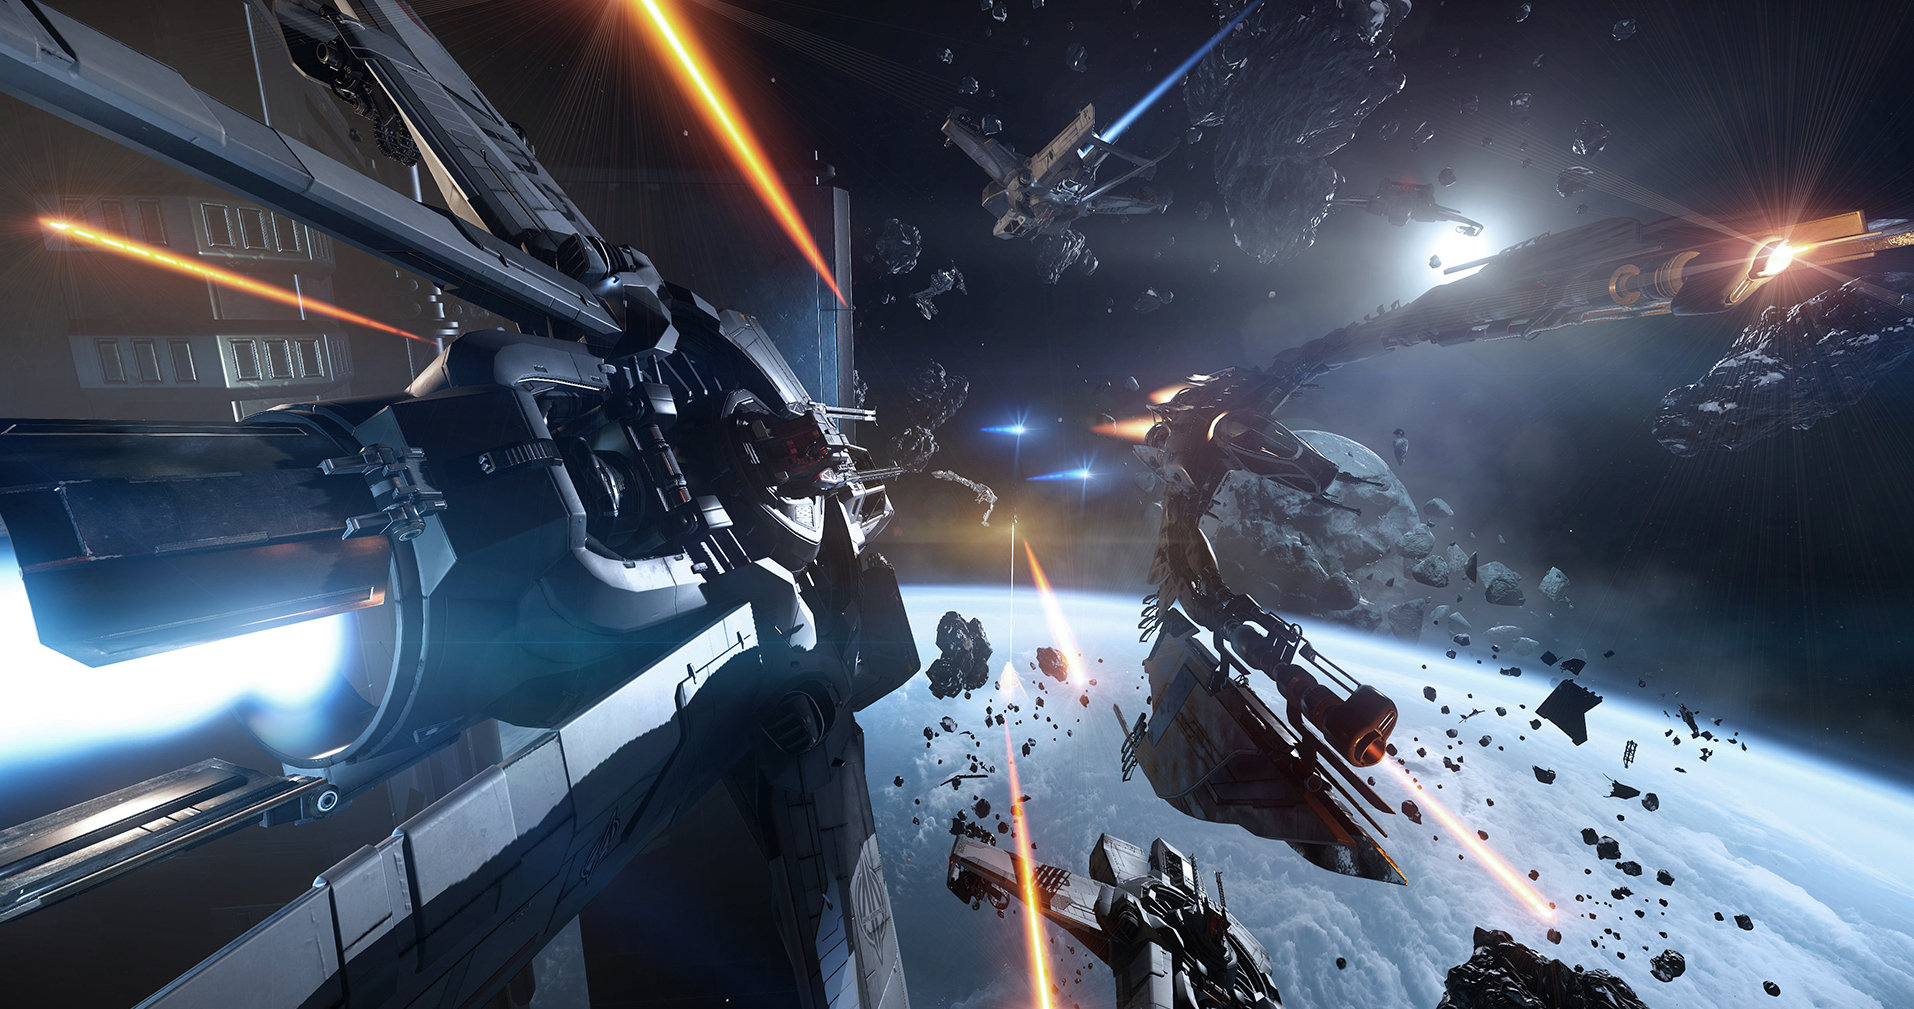 Бюджет Star Citizen больше 170 миллионов долларов